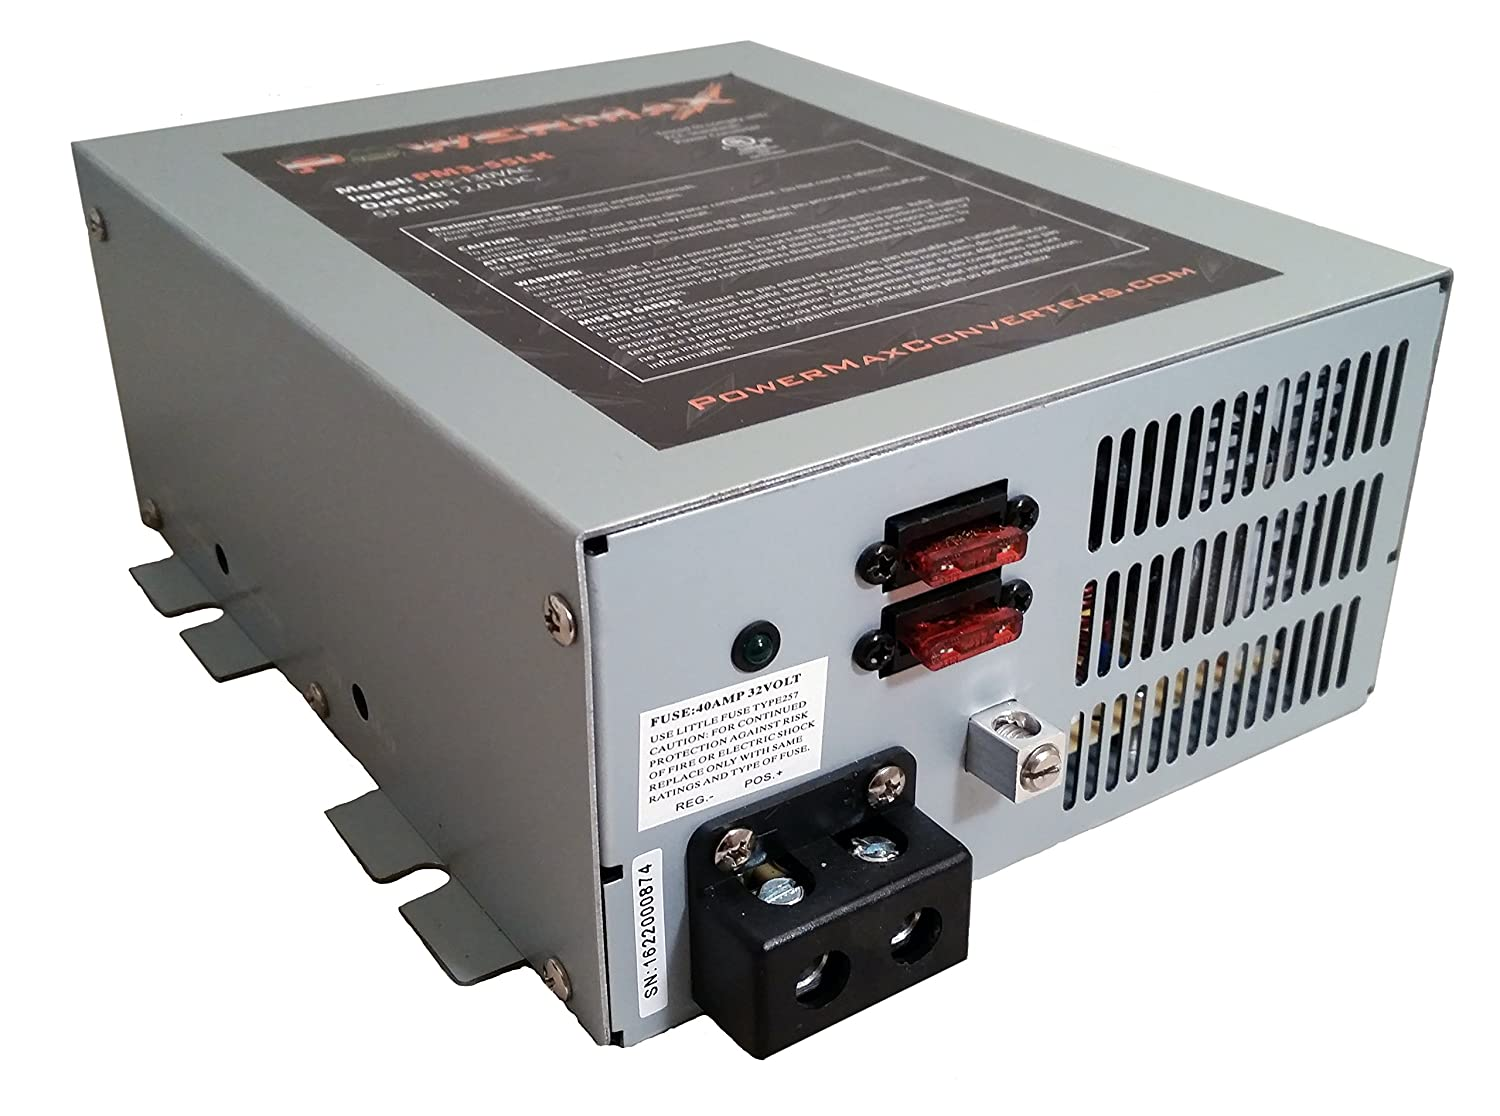 PowerMax PM4 35A 110V AC to 12V DC 35 Amp Power Converter with Built-In 4 Stage Smart Battery Charger